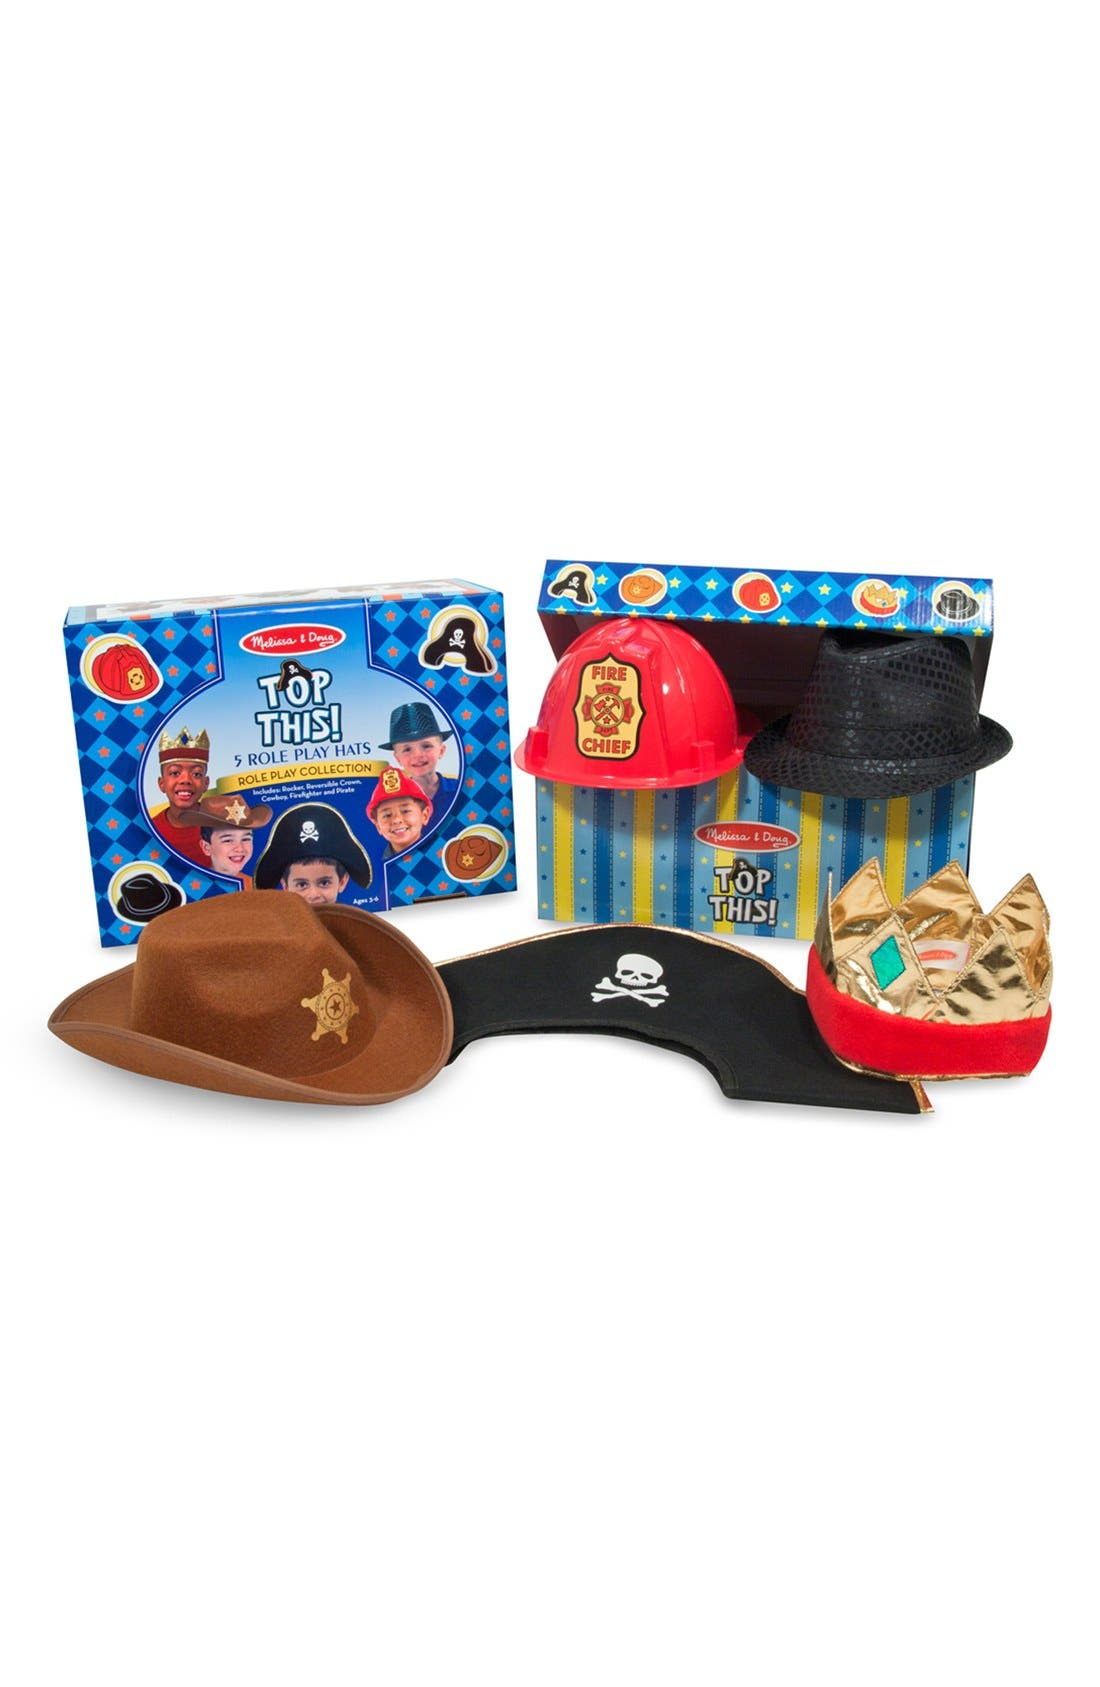 Alternate Image 1 Selected - Melissa & Doug 'Role Play Collection - Top This!' Hats